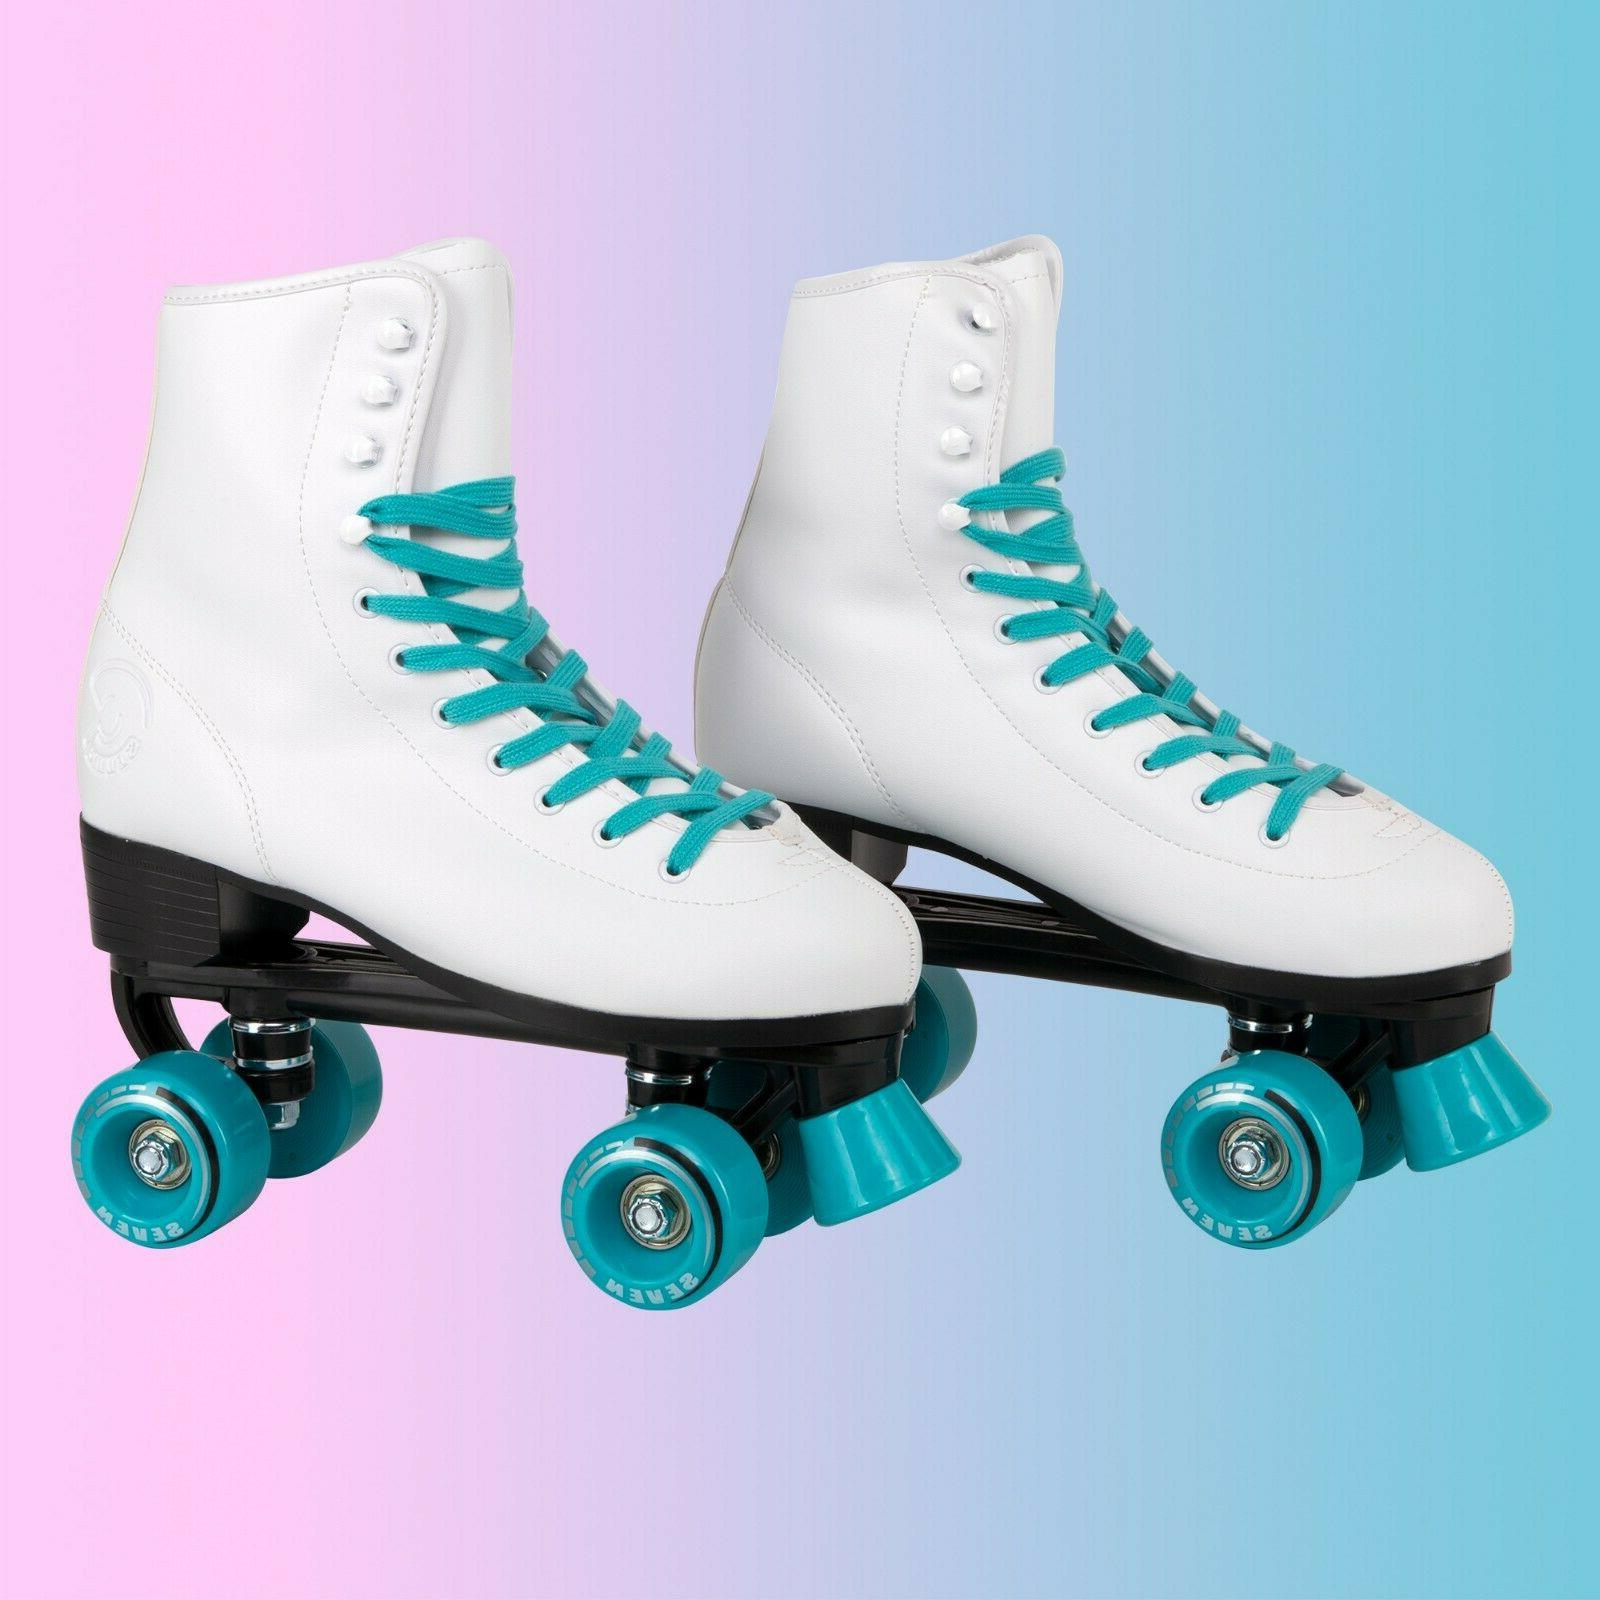 C7skates Teal Blue Soft Faux Leather Roller Skates Girls Chr